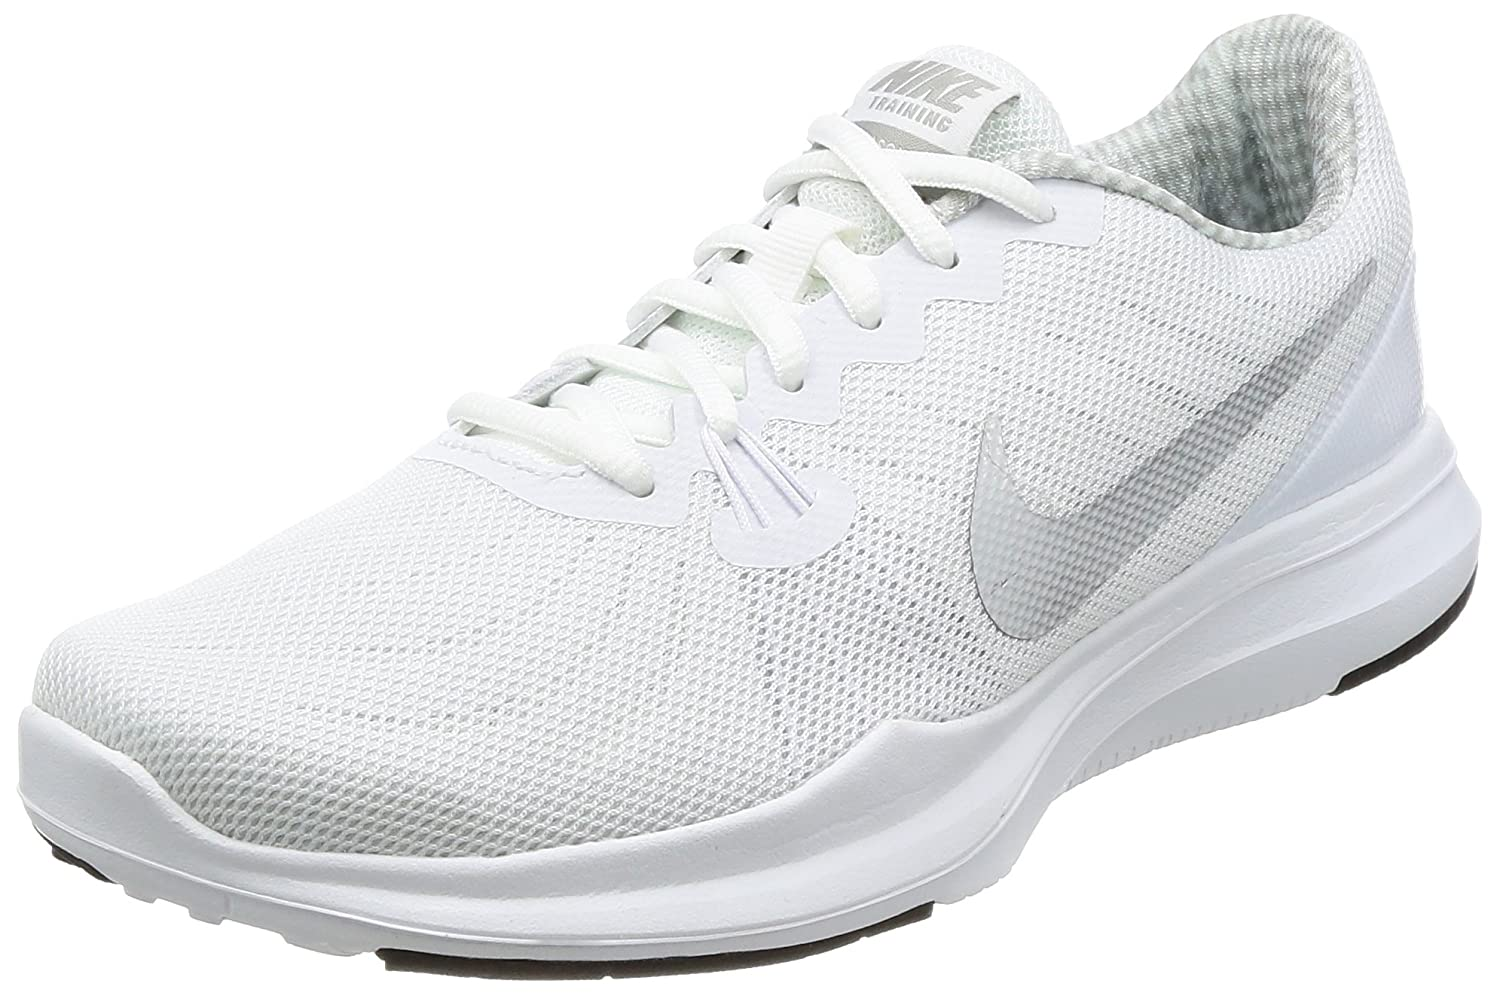 NIKE Women's in-Season 7 Cross Trainer B01MT1HHPM 10 B(M) US|White/Silver